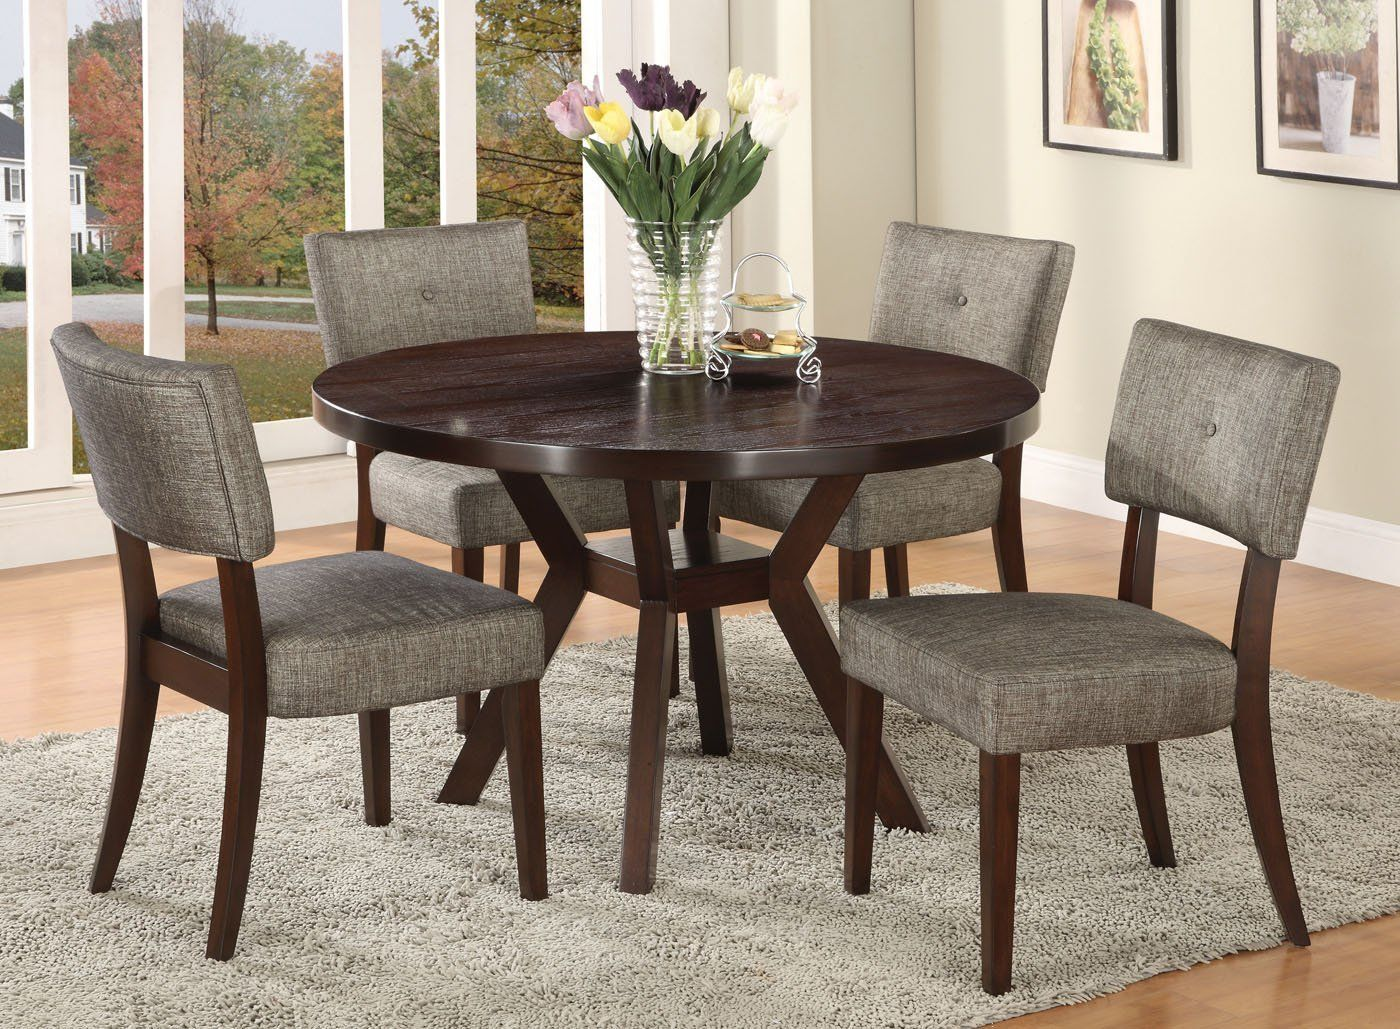 Amazon Com Acme 16250 Drake Espresso Round Dining Table 48 Inch Home Kitchen Round Dining Room Sets Round Dining Table Sets Dining Room Small